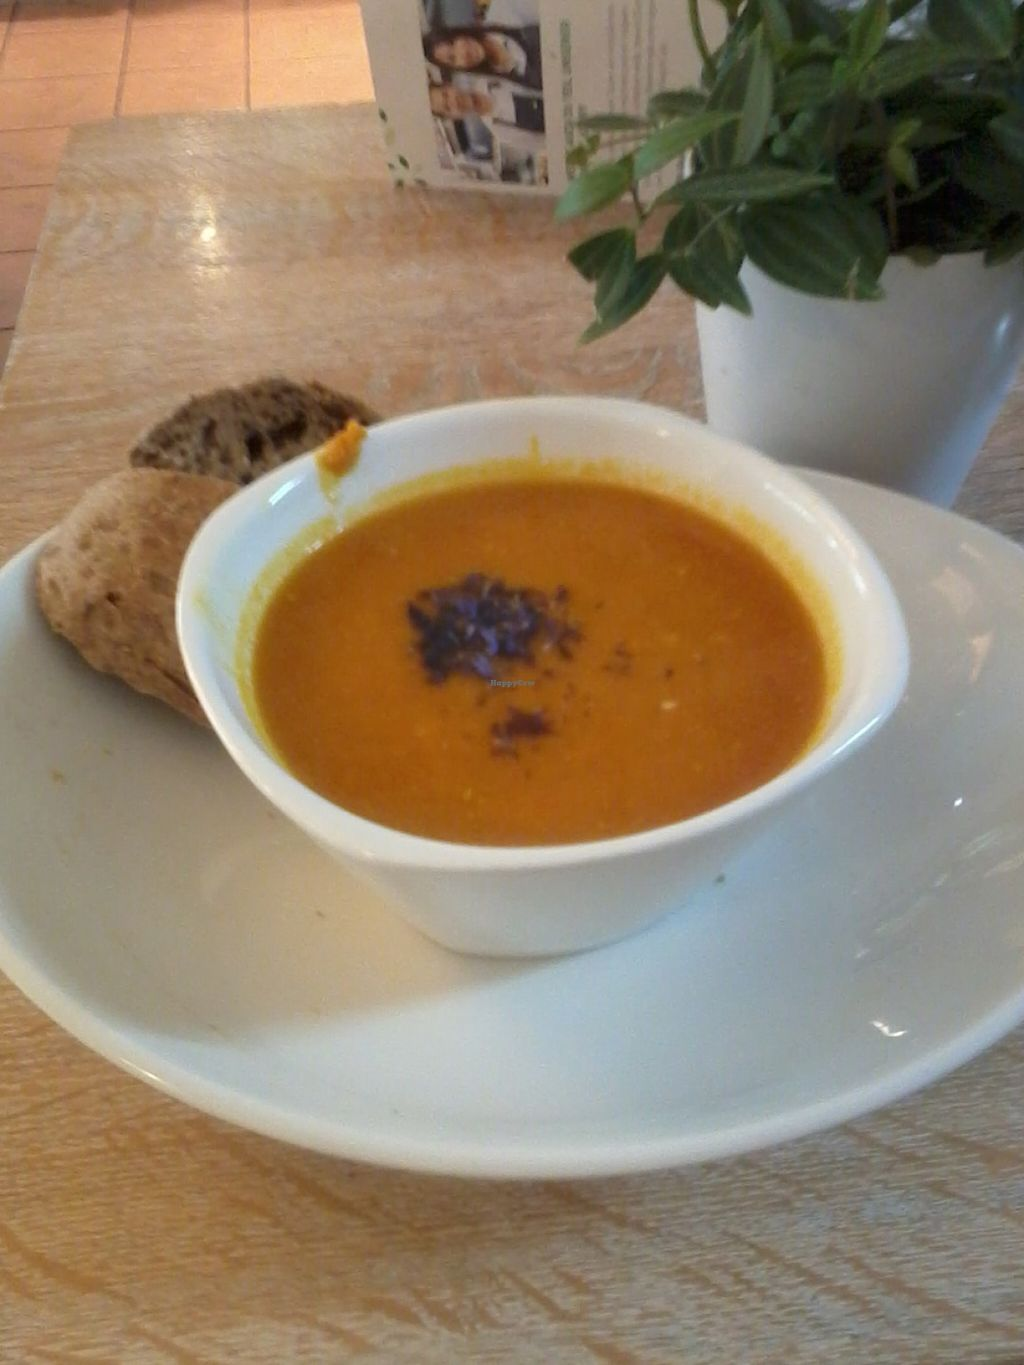 """Photo of Dean & David - Schellingstr  by <a href=""""/members/profile/deadpledge"""">deadpledge</a> <br/>Red lentil soup <br/> July 28, 2016  - <a href='/contact/abuse/image/77182/162950'>Report</a>"""